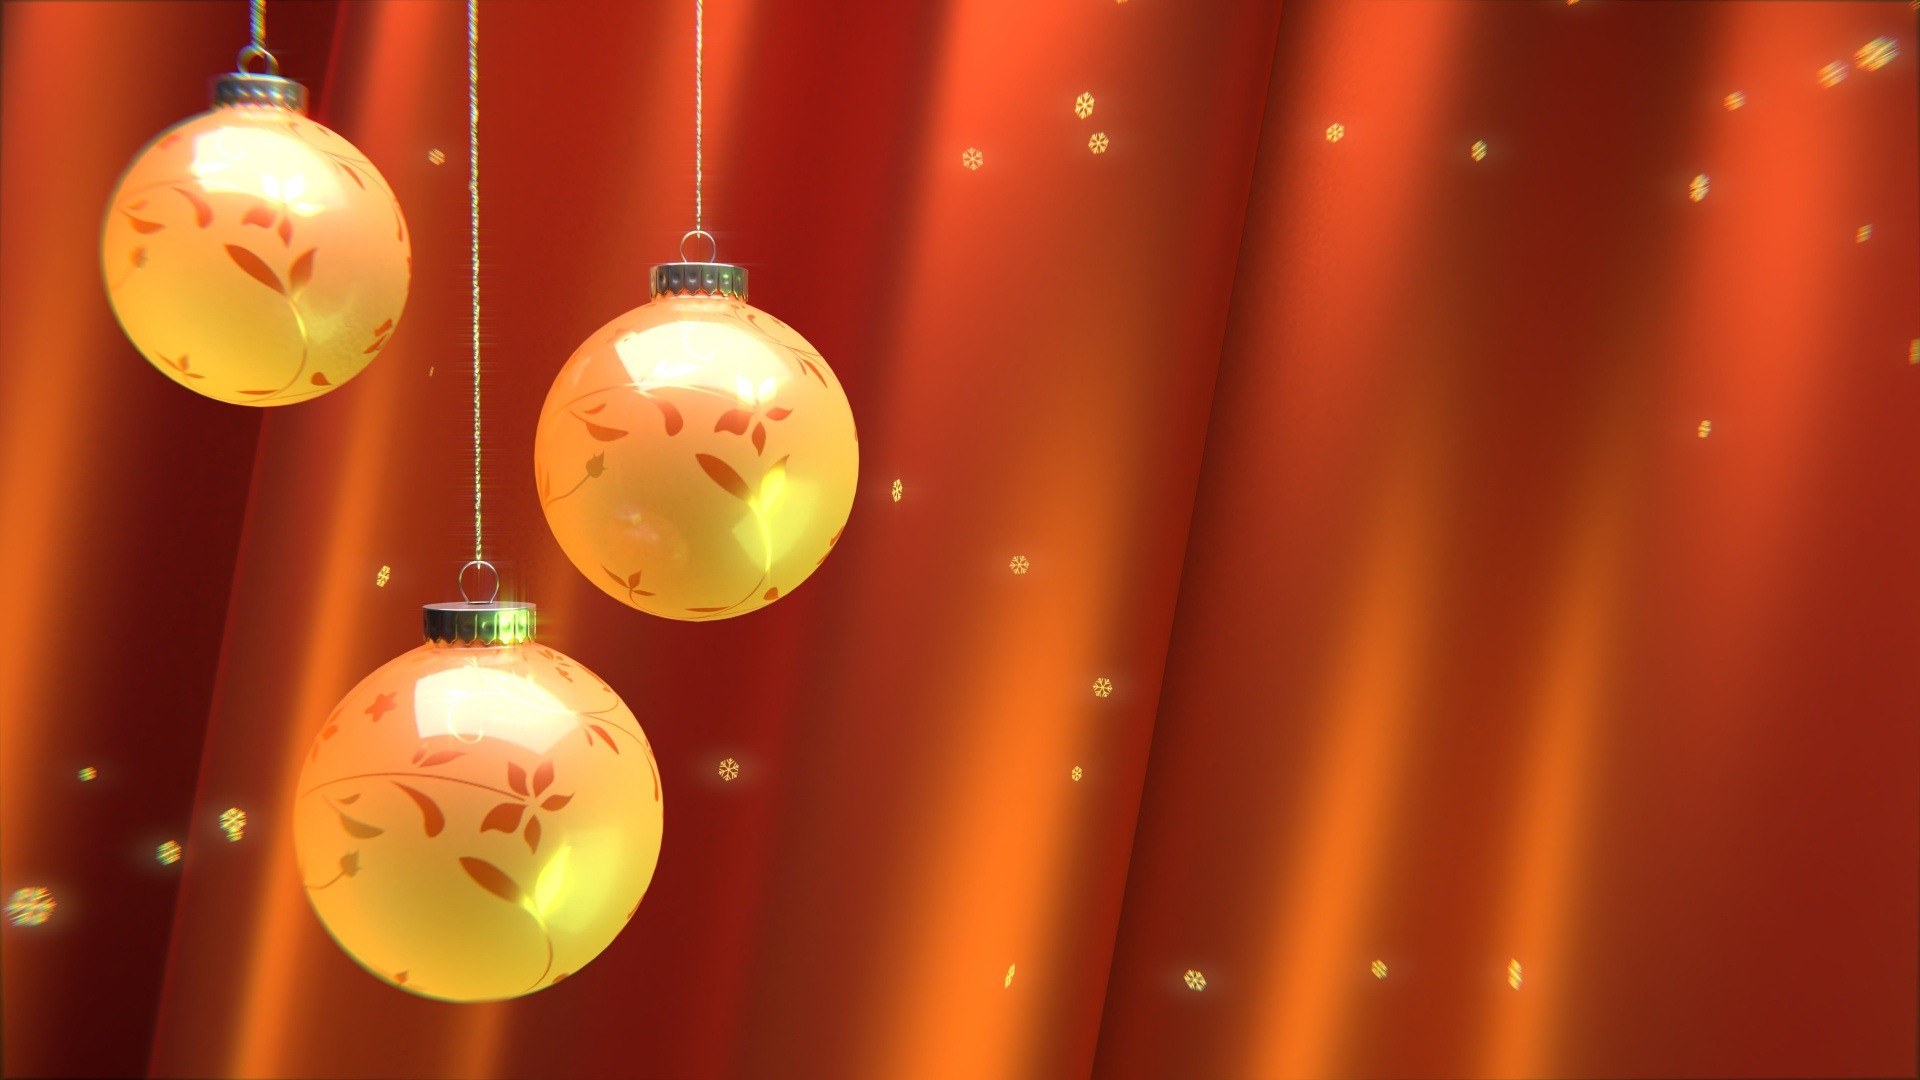 Christmas Ornaments Background.Christmas Ornaments Holiday Decoration Christmas Ornaments